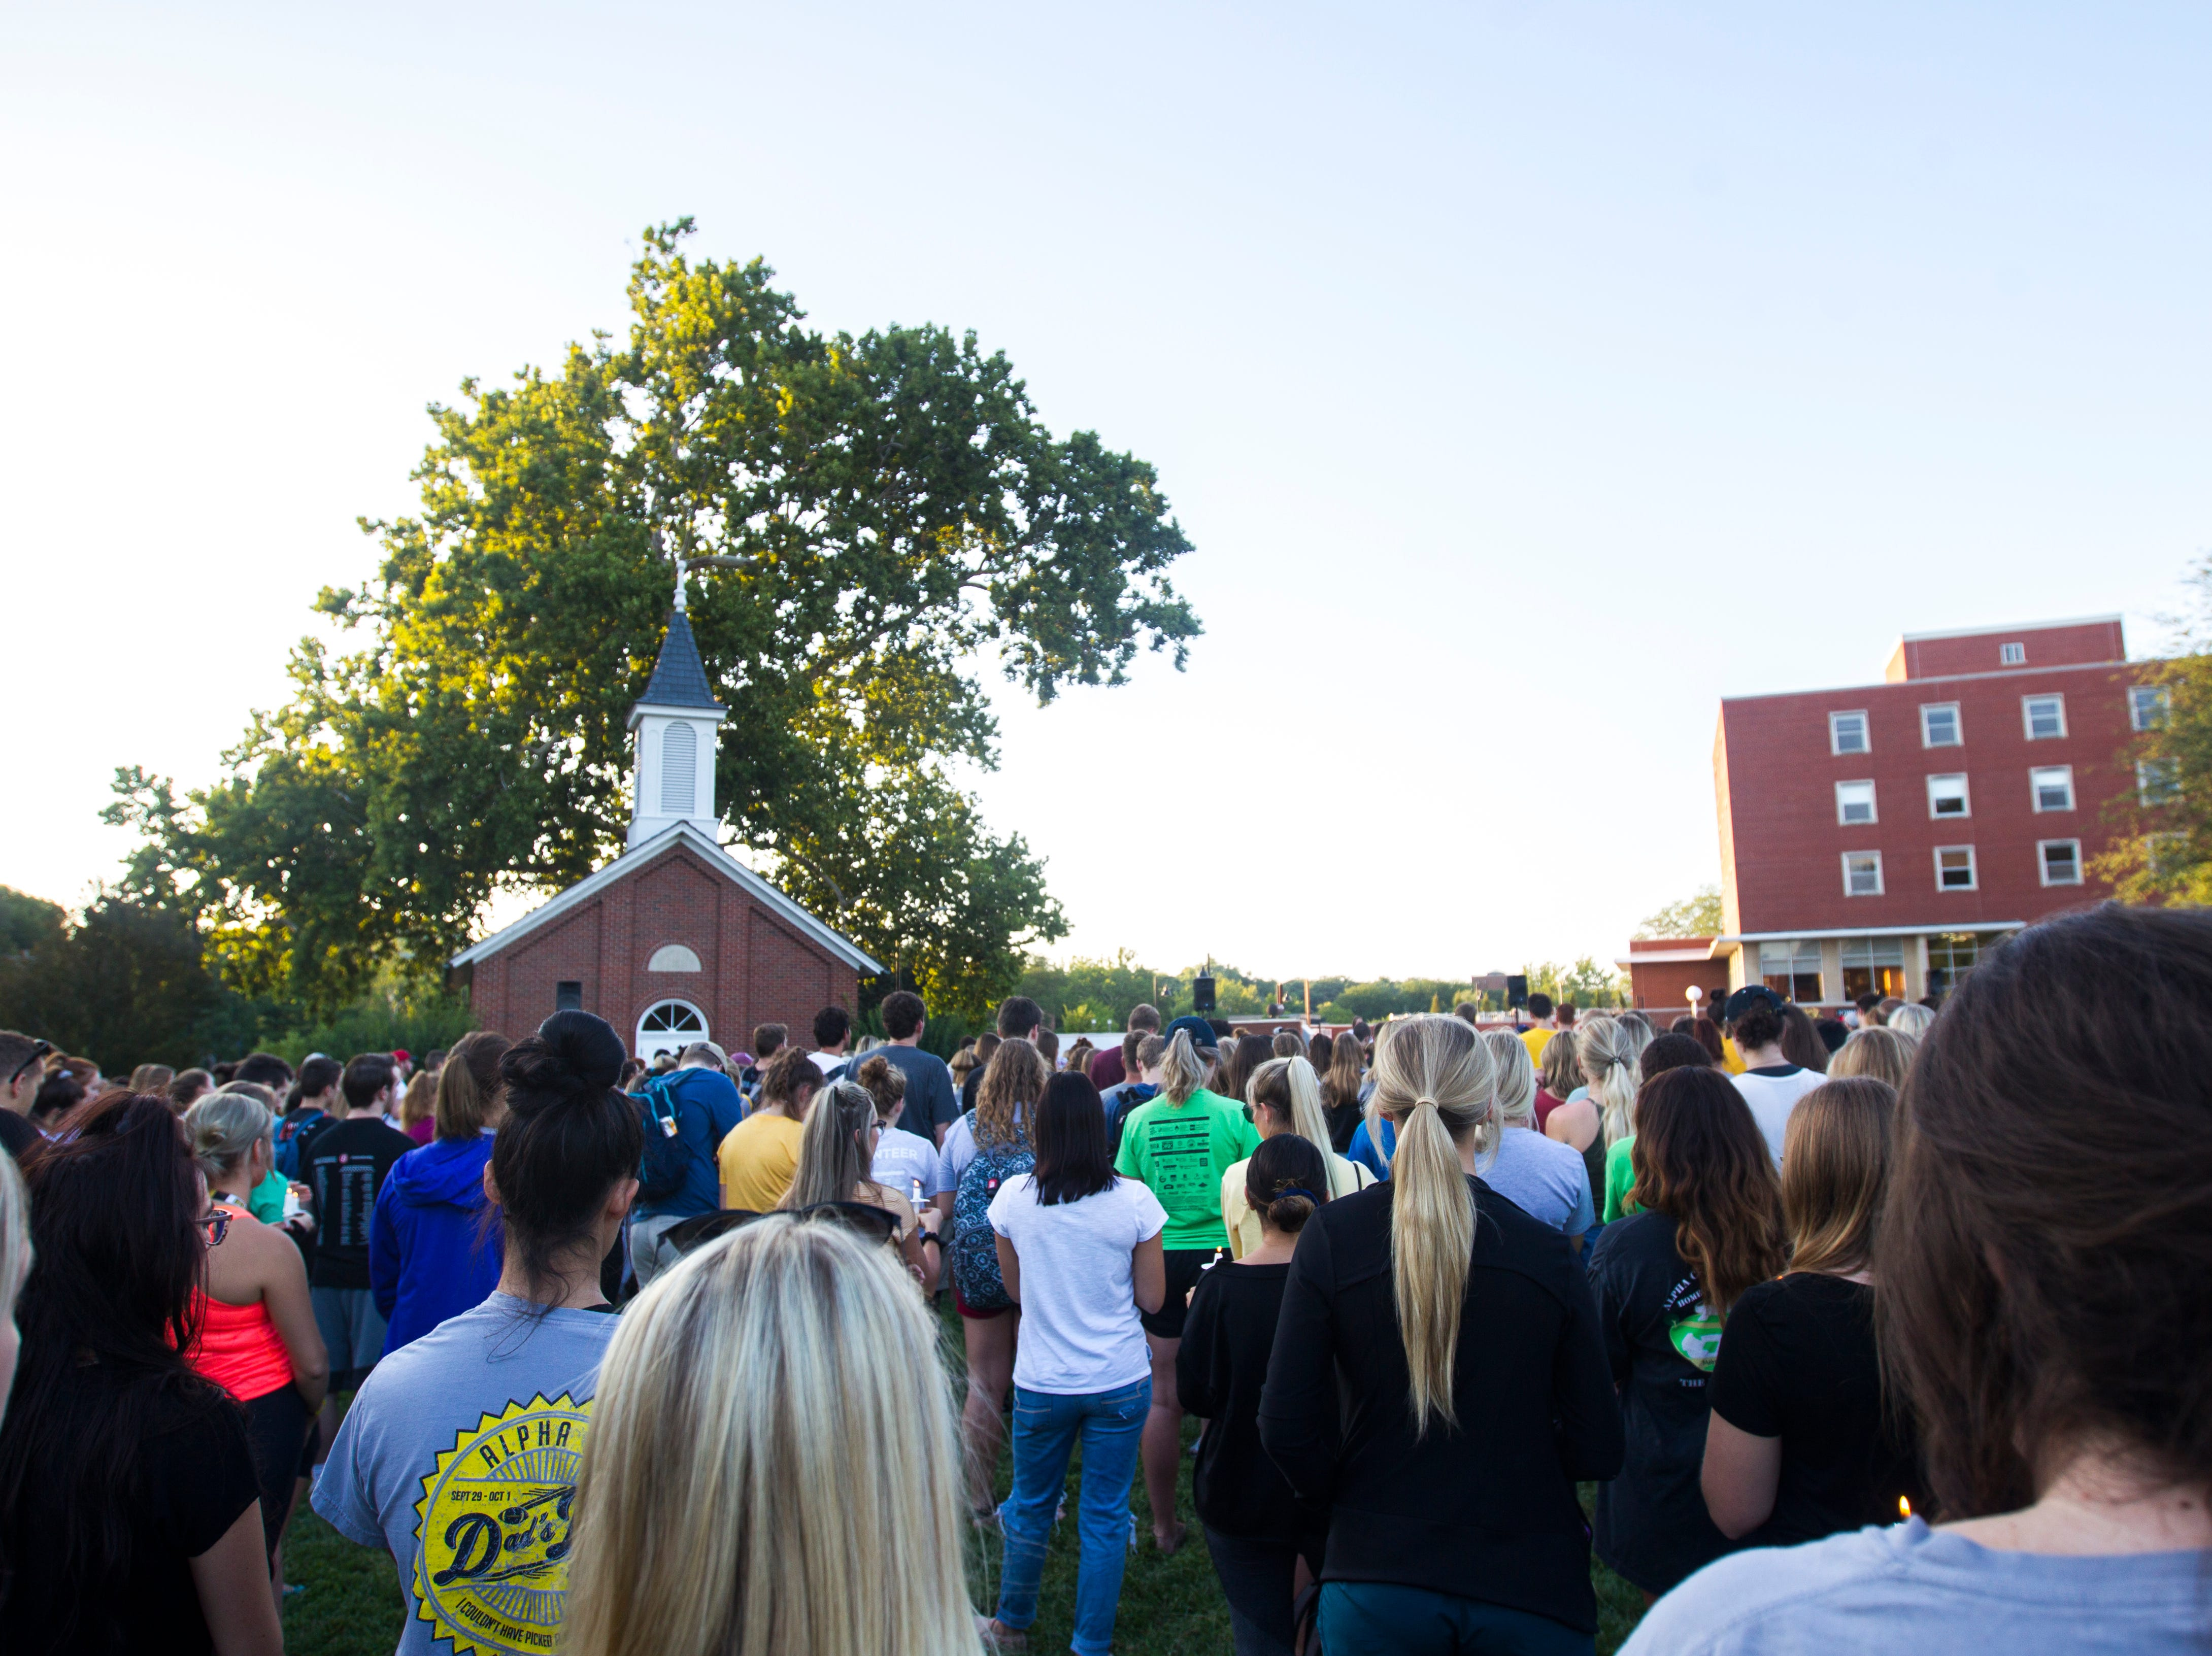 Students gather during a vigil for Mollie Tibbetts on Wednesday, Aug. 22, 2018, in Hubbard Park on the University of Iowa campus in Iowa City.